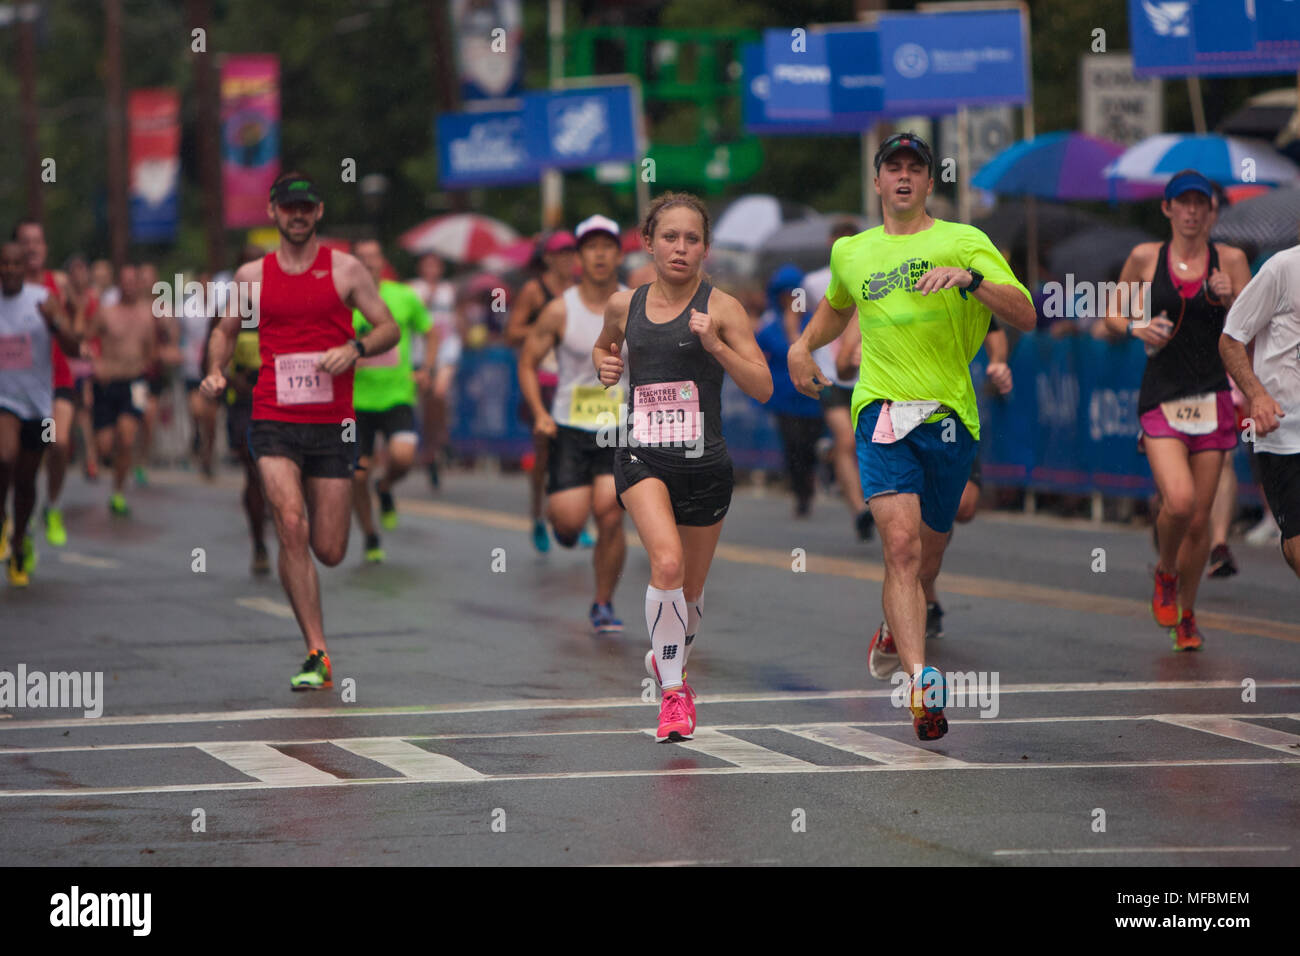 Atlanta, GA, USA - July 4, 2015:  Exhausted runners cross the finish line in the rain at the 46th annual Peachtree Road Race 10K in Atlanta. - Stock Image